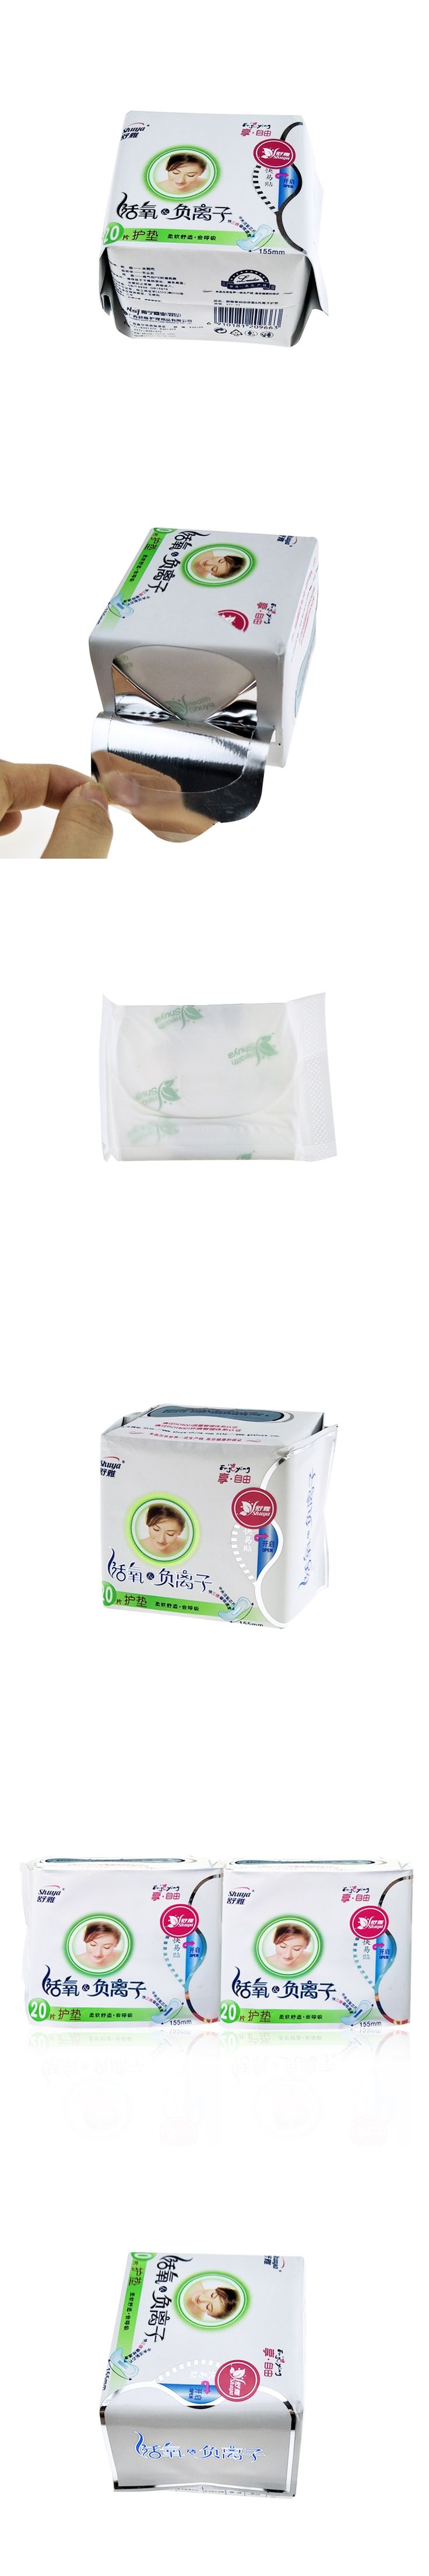 2Pack / 40  Piece Of Comfortable And Elegant Negative Lon Pad Sanitary Napkins Women's Health Supplies Anion Mat Sanitary Napkin